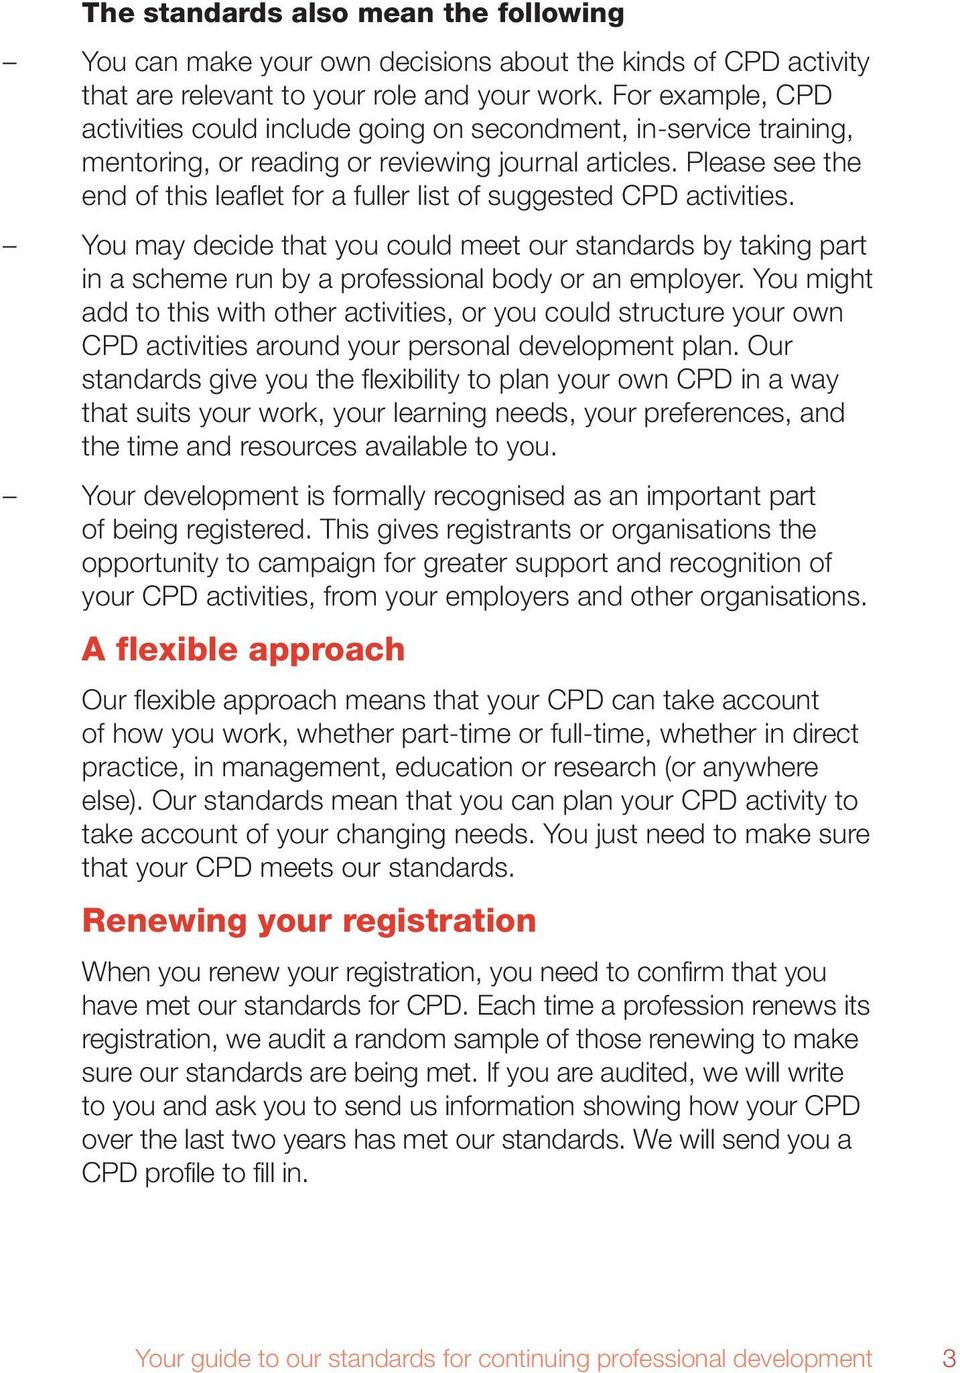 Please see the end of this leaflet for a fuller list of suggested CPD activities. You may decide that you could meet our standards by taking part in a scheme run by a professional body or an employer.